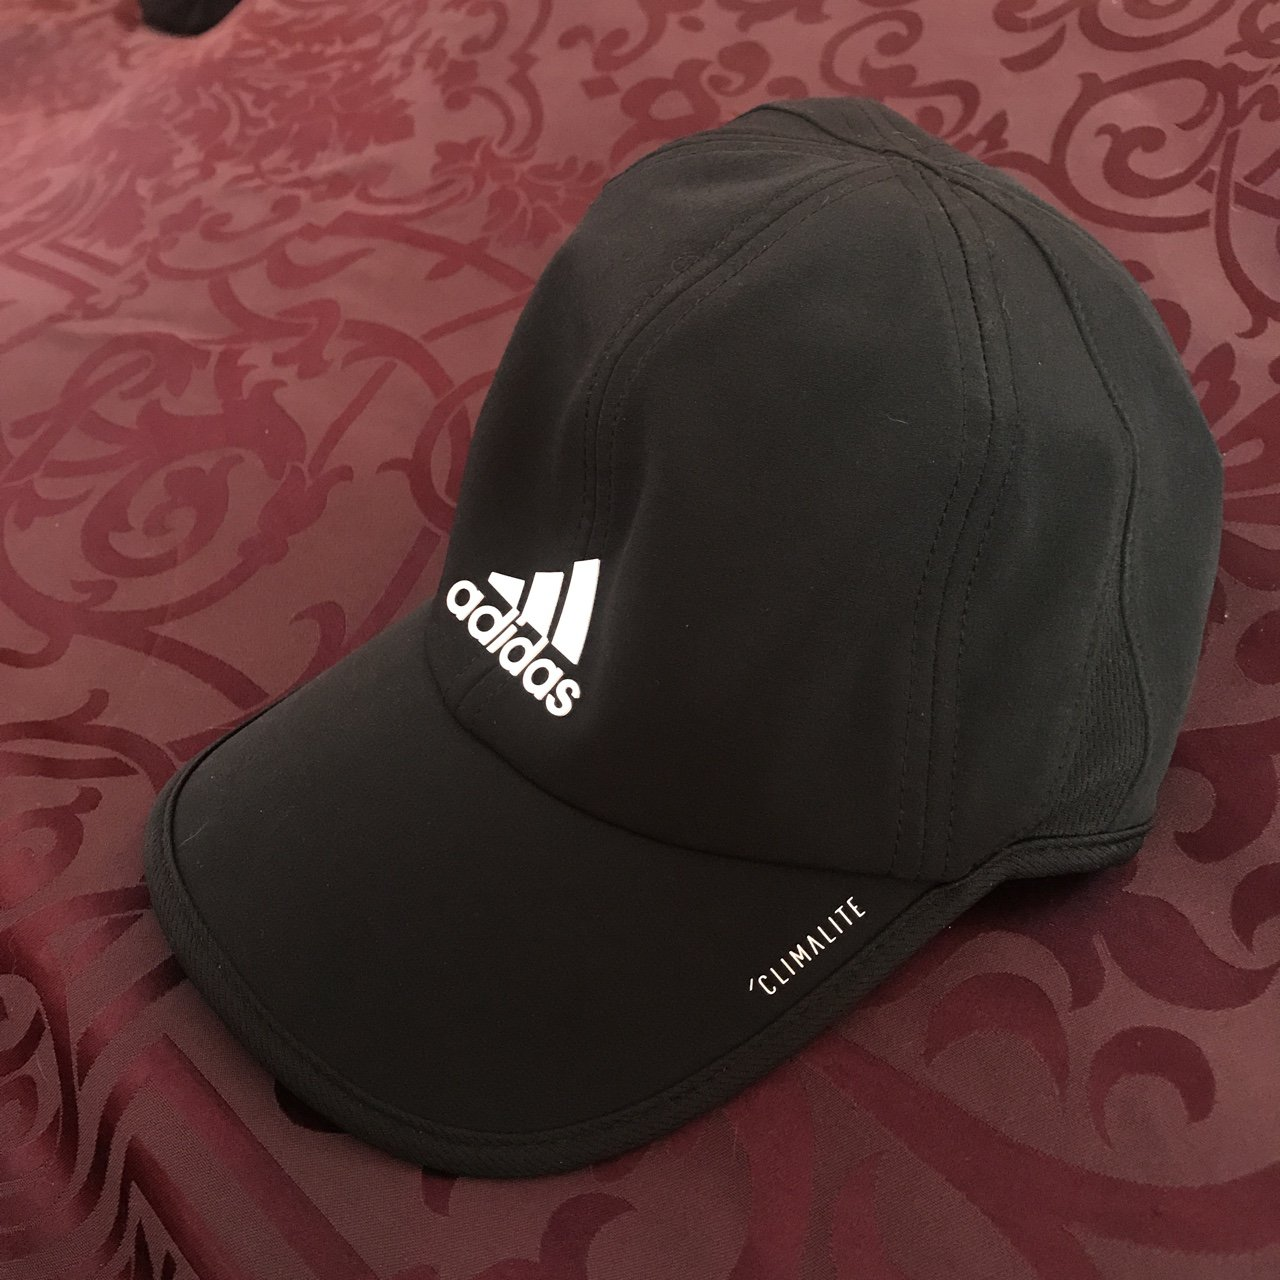 ad7a7a91b84 Black Adidas sports hat. Great for working out